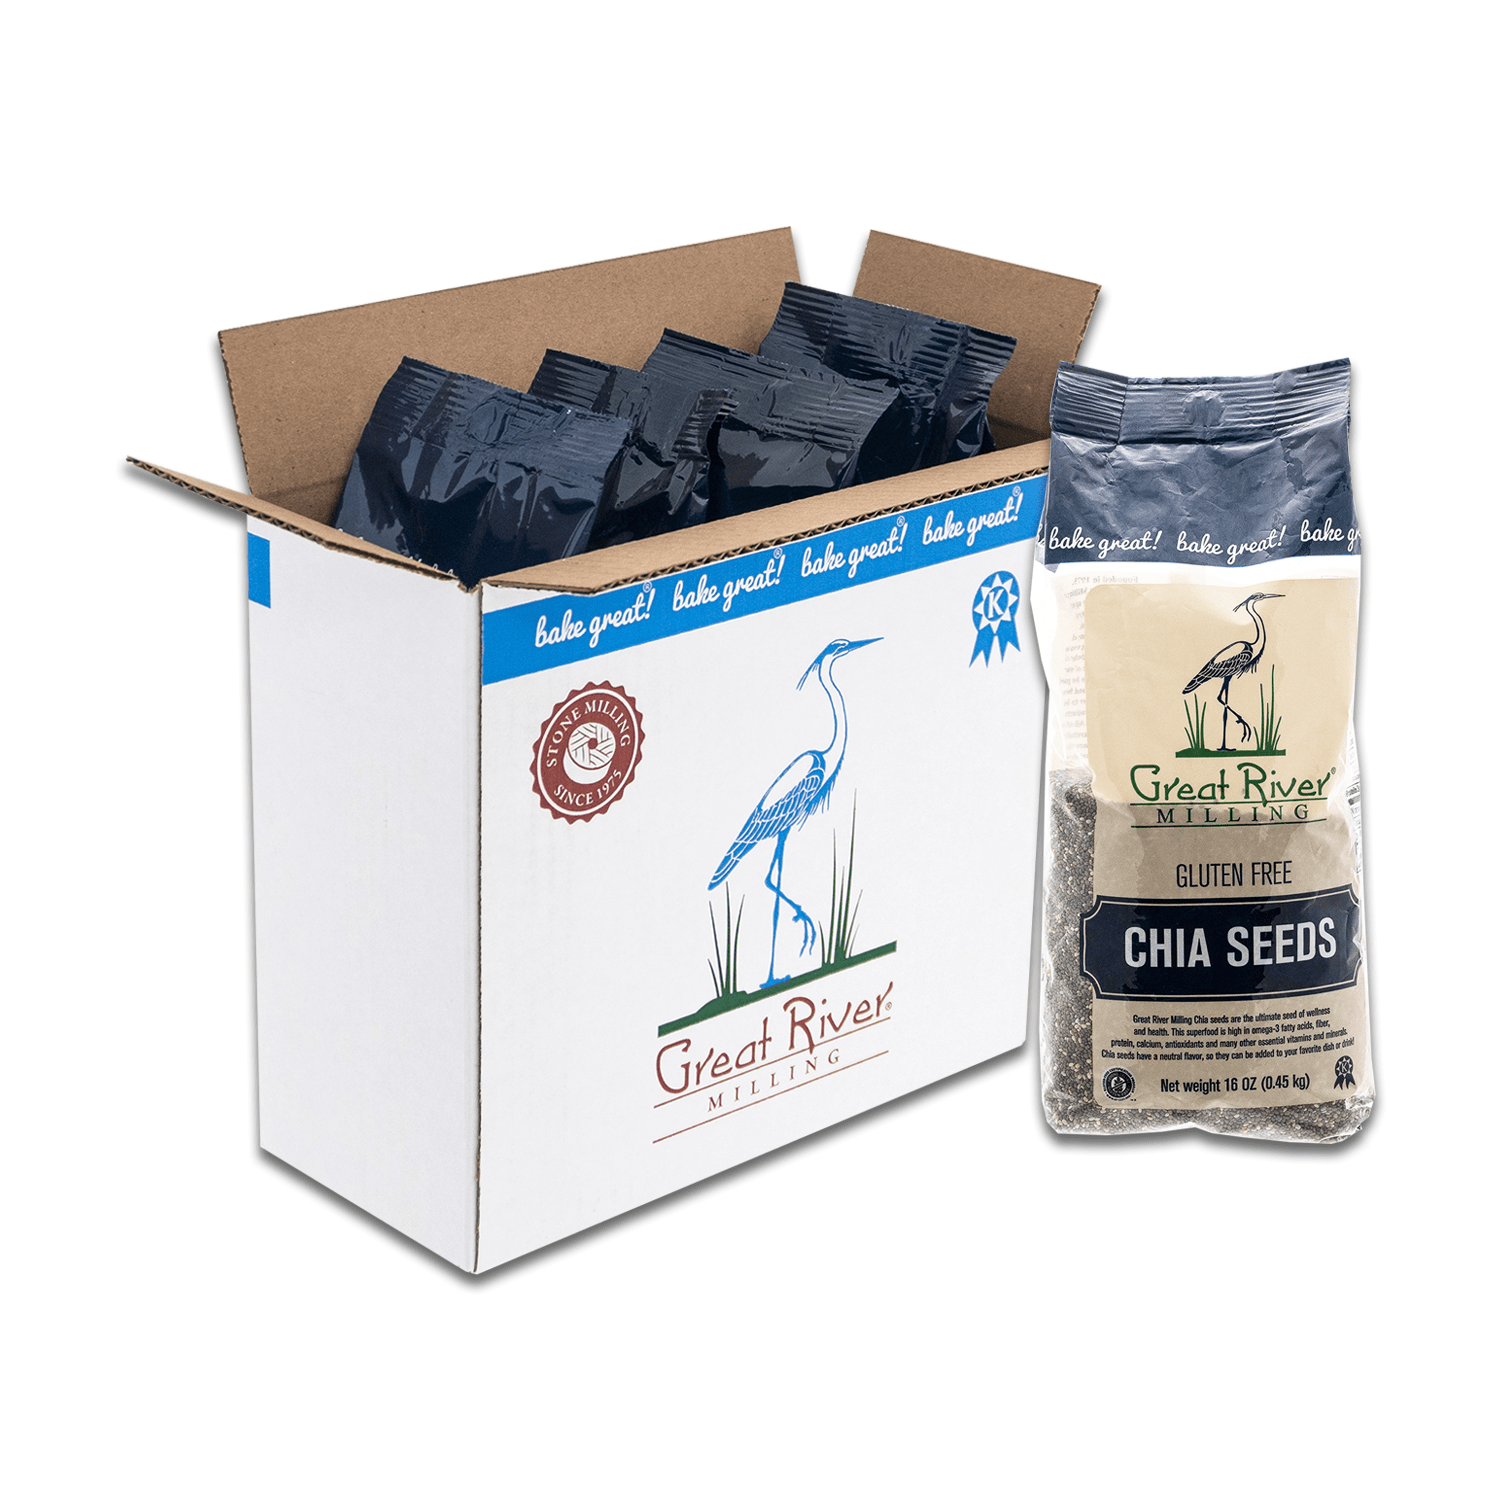 great river milling chia seeds case open